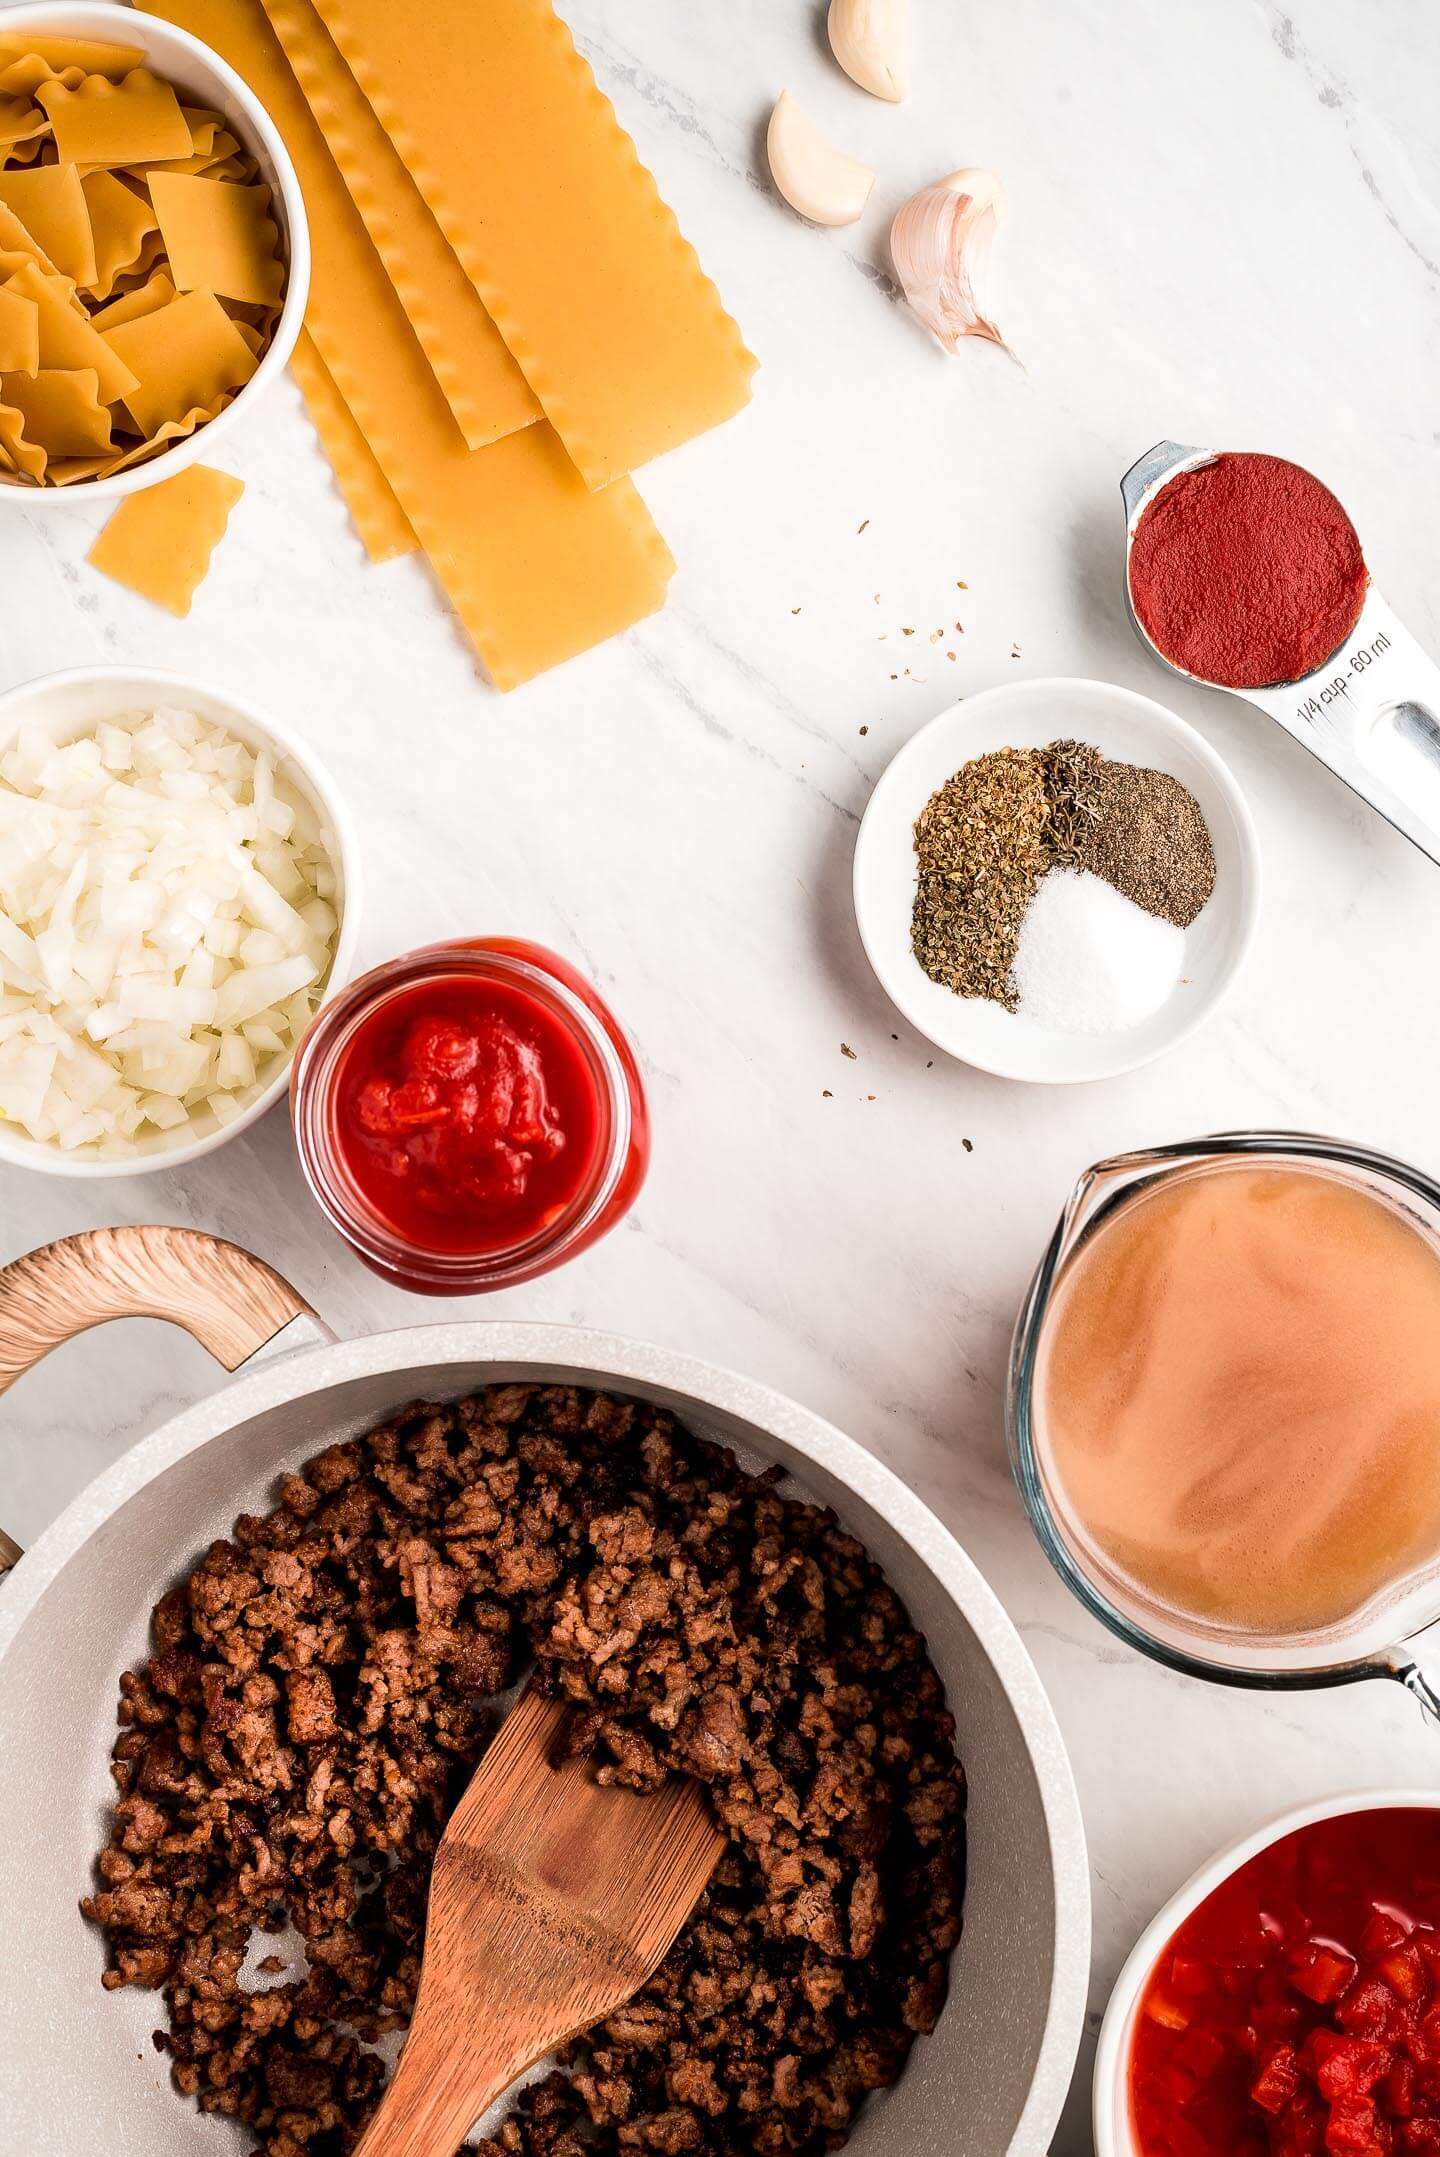 Ingredients on a marble surface- browned ground beef, lasagna noodles, onions, tomatoes, broth, garlic, spices.